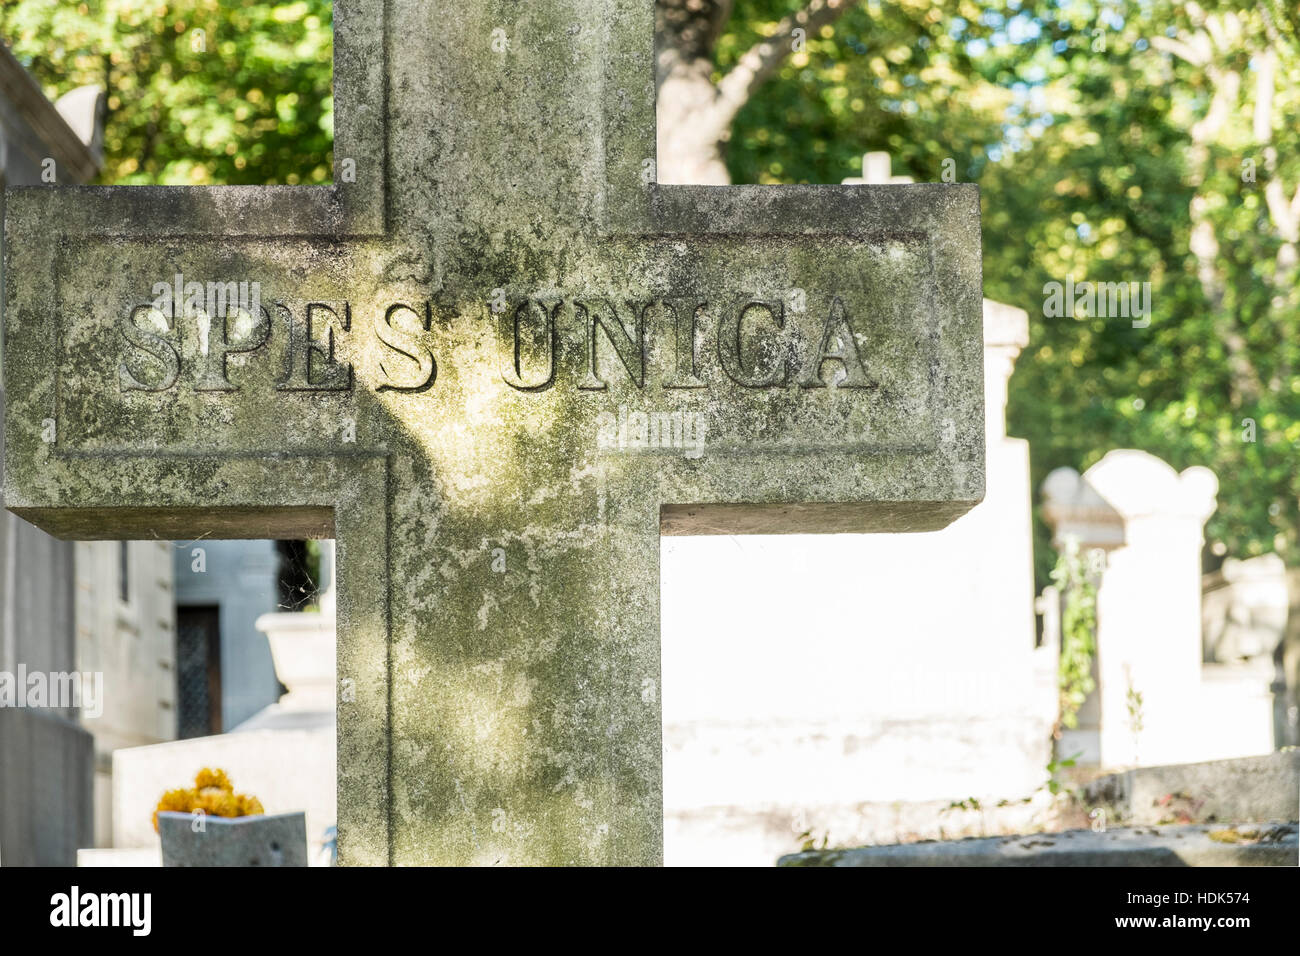 spes unica, inscription on grave cross, pere lachaise cemetery - Stock Image